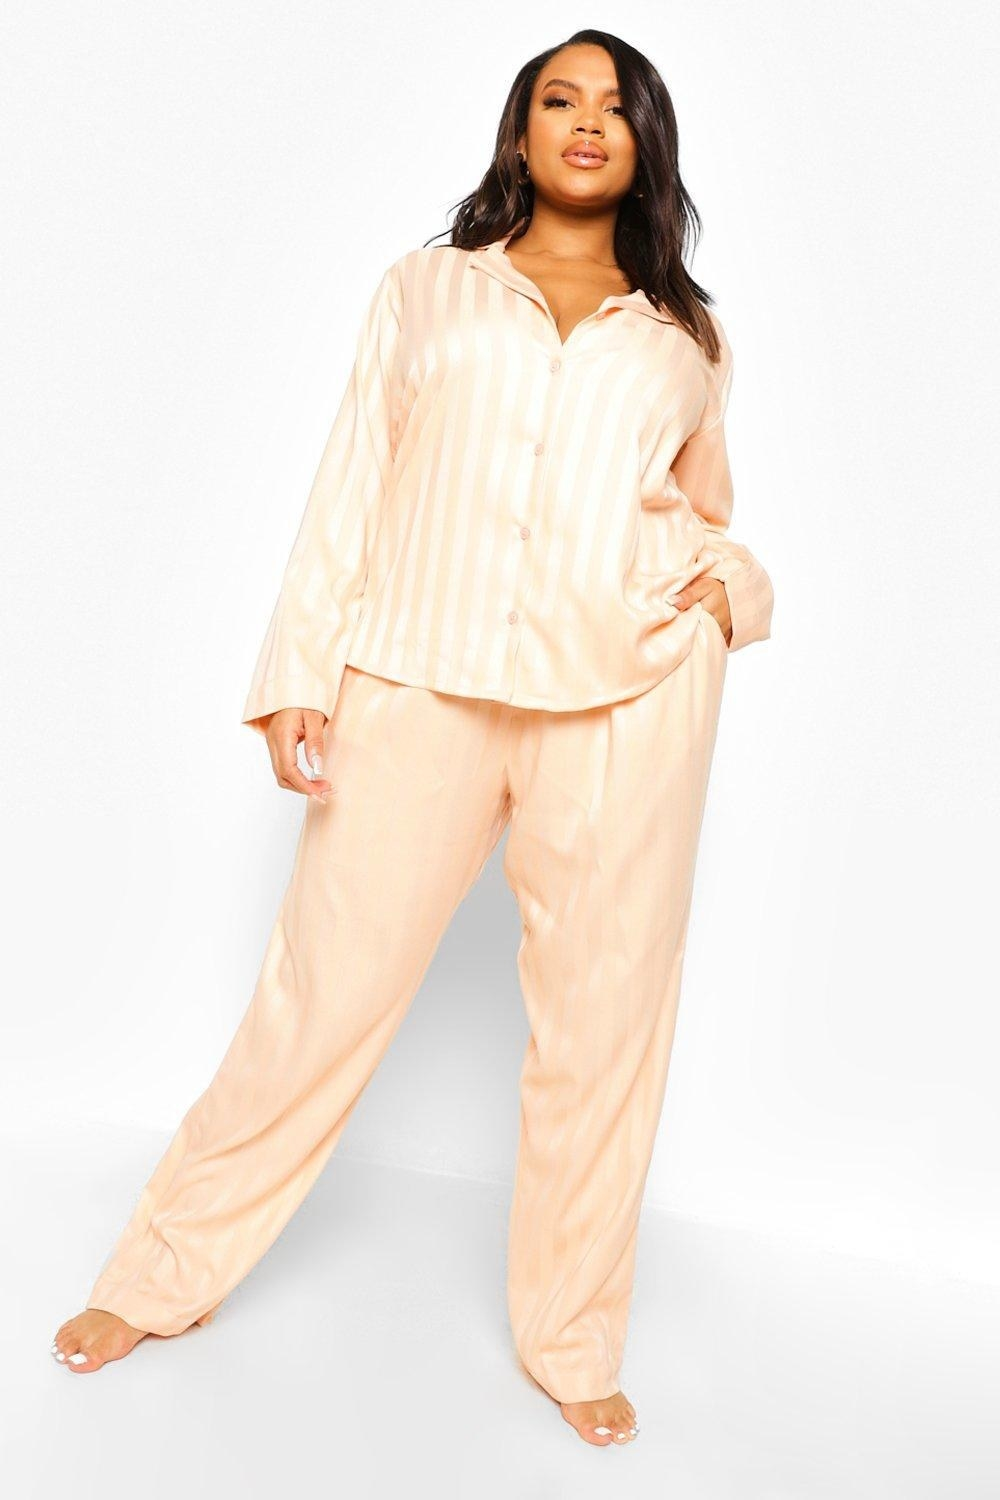 model wearing the pink and white striped pajamas